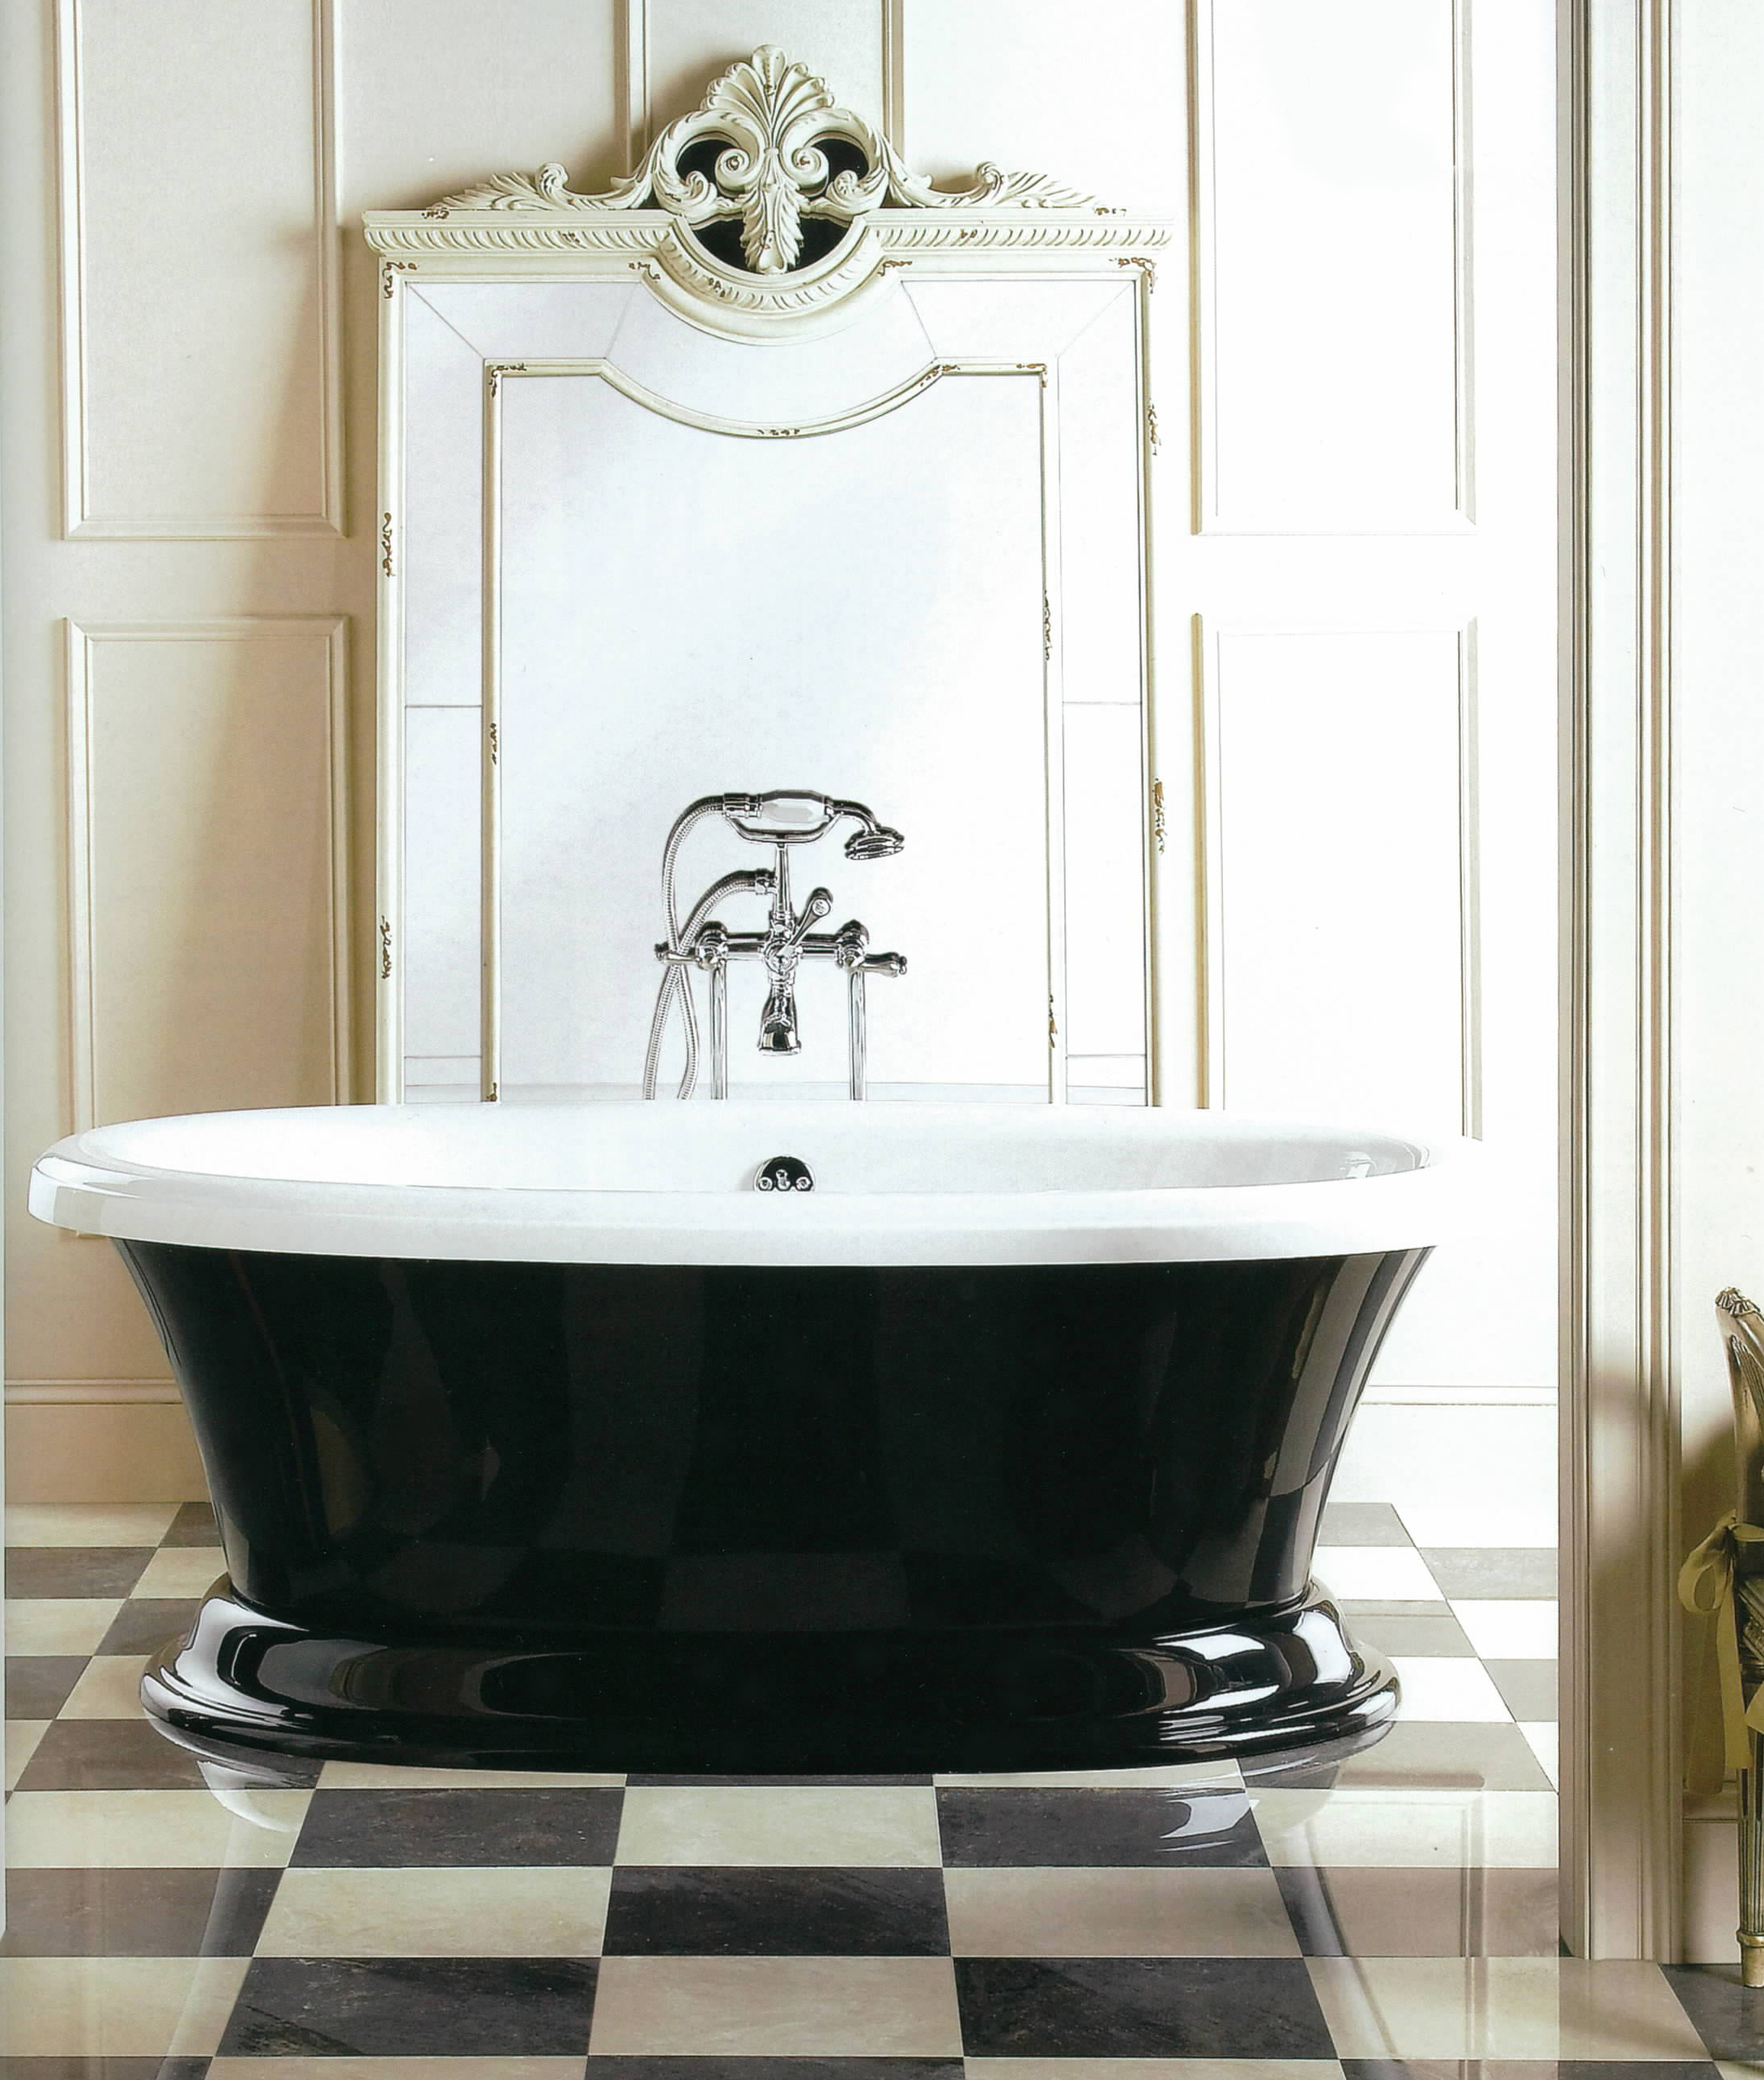 Aquatic Serenity 11 Freestanding Bath Tub Black and White Aquatic